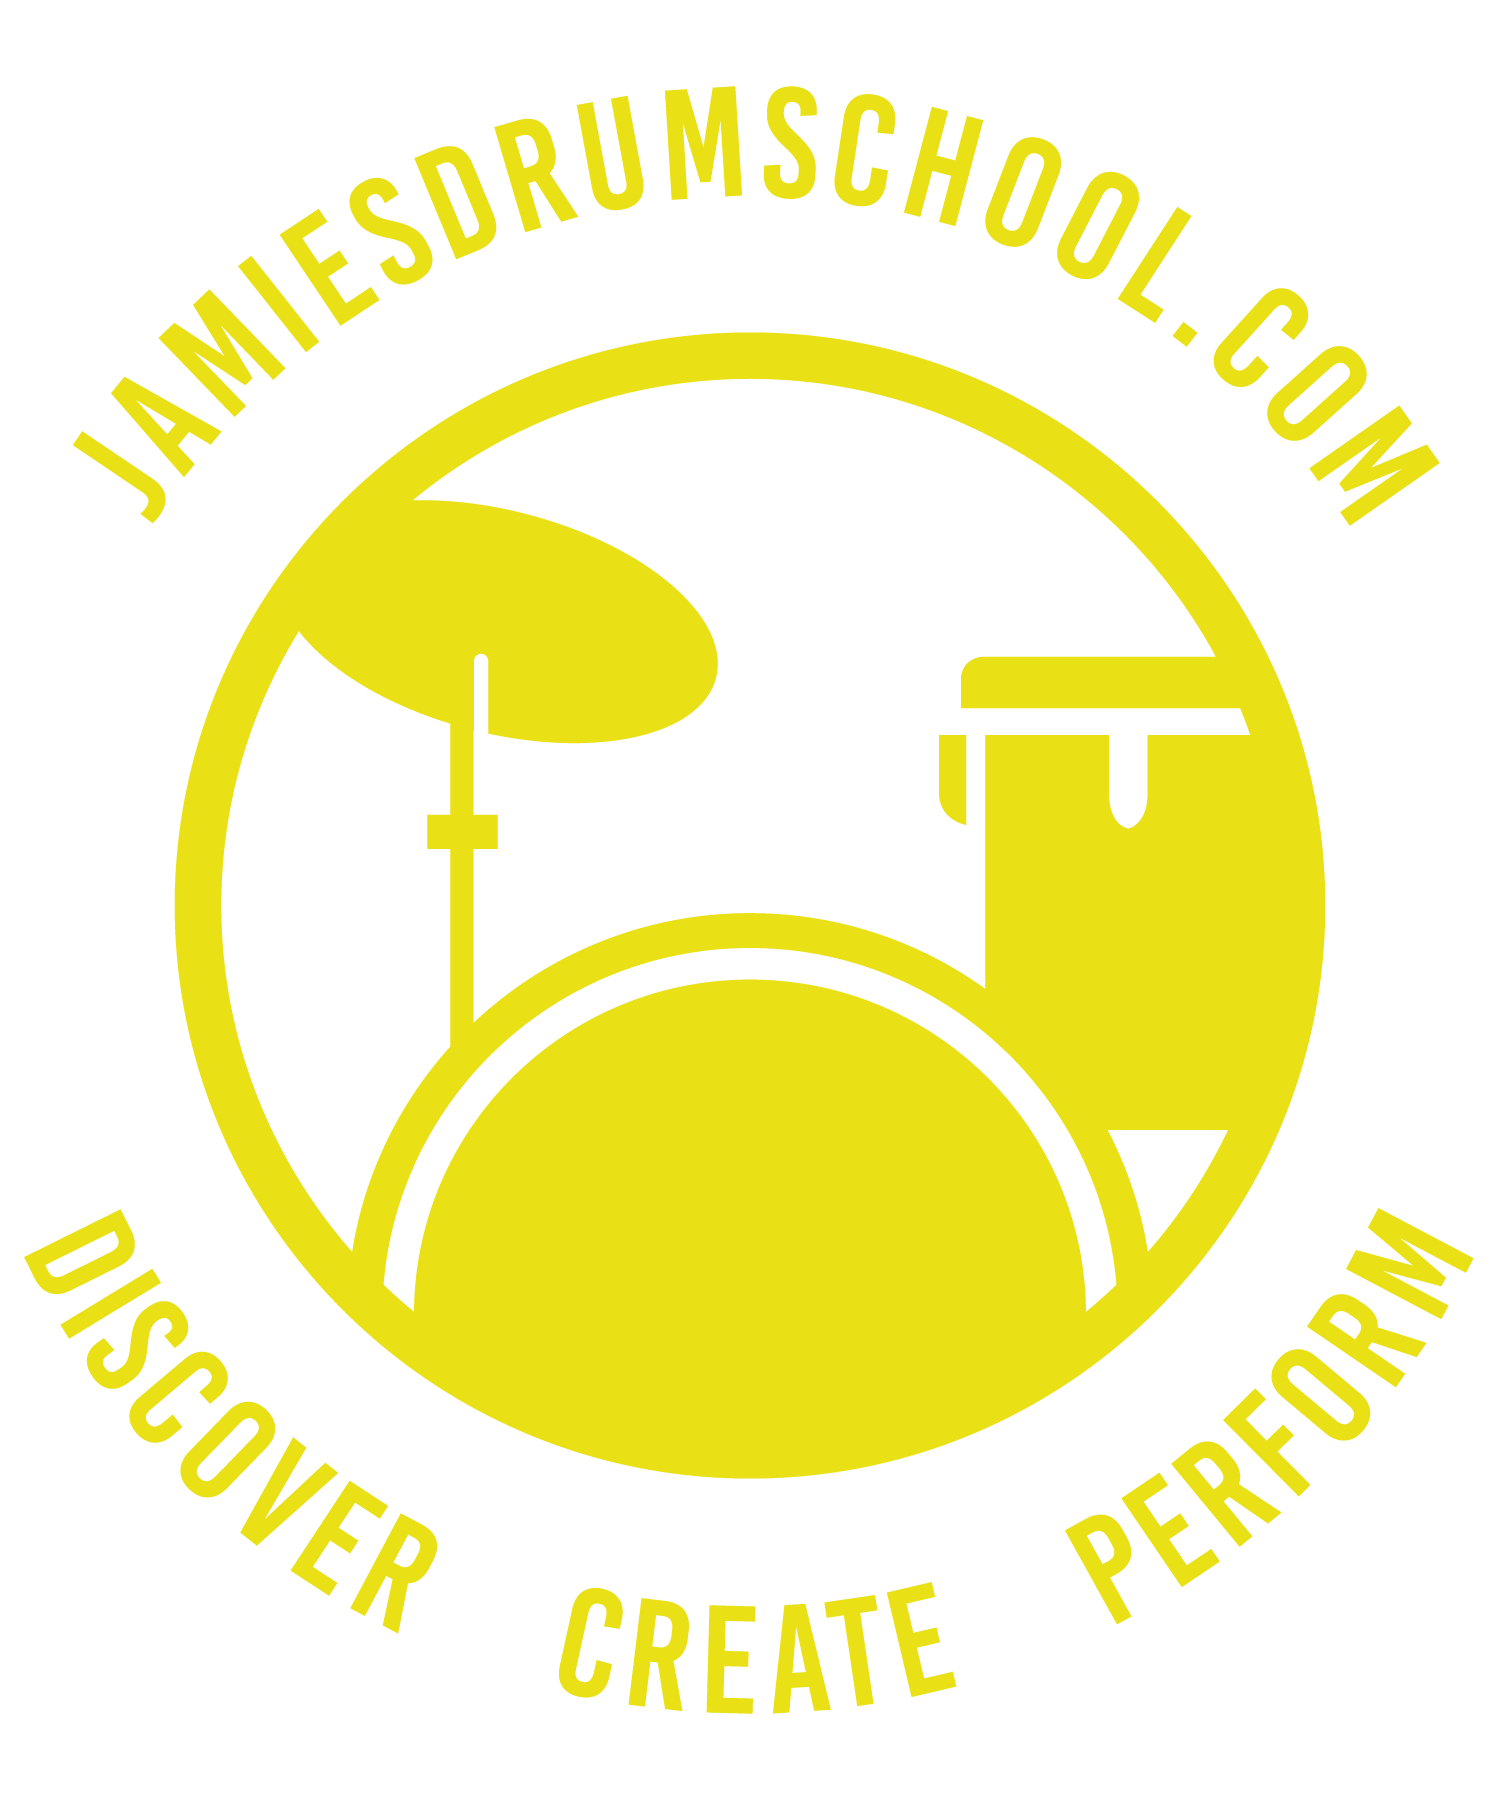 Jamie's Drum School